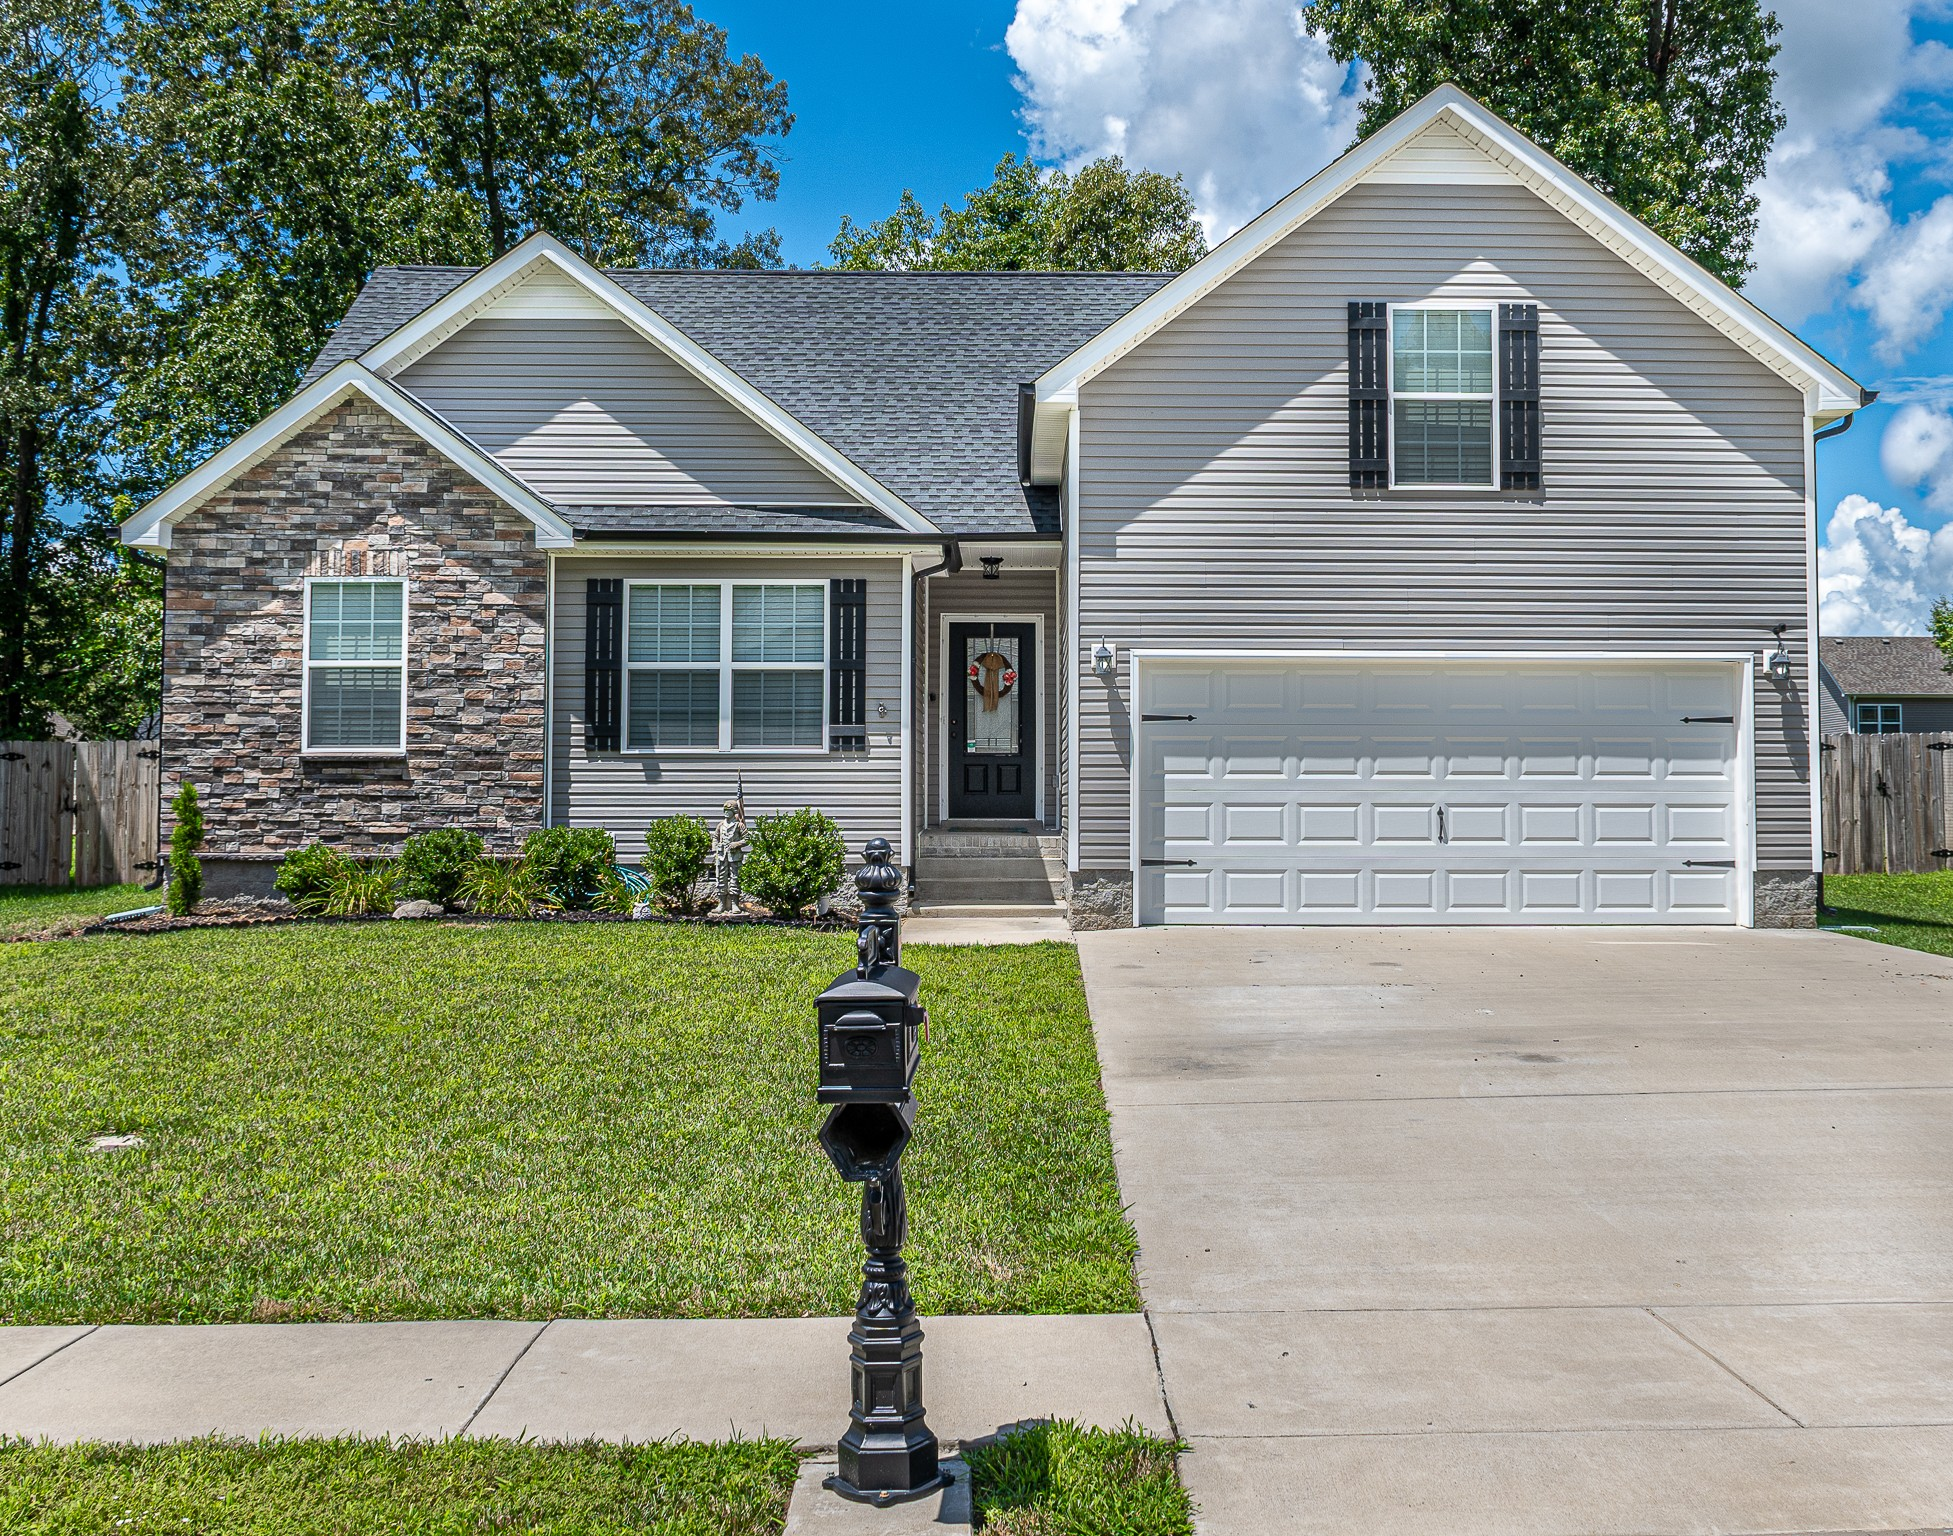 154 Sycamore Hill Dr Property Photo - Clarksville, TN real estate listing